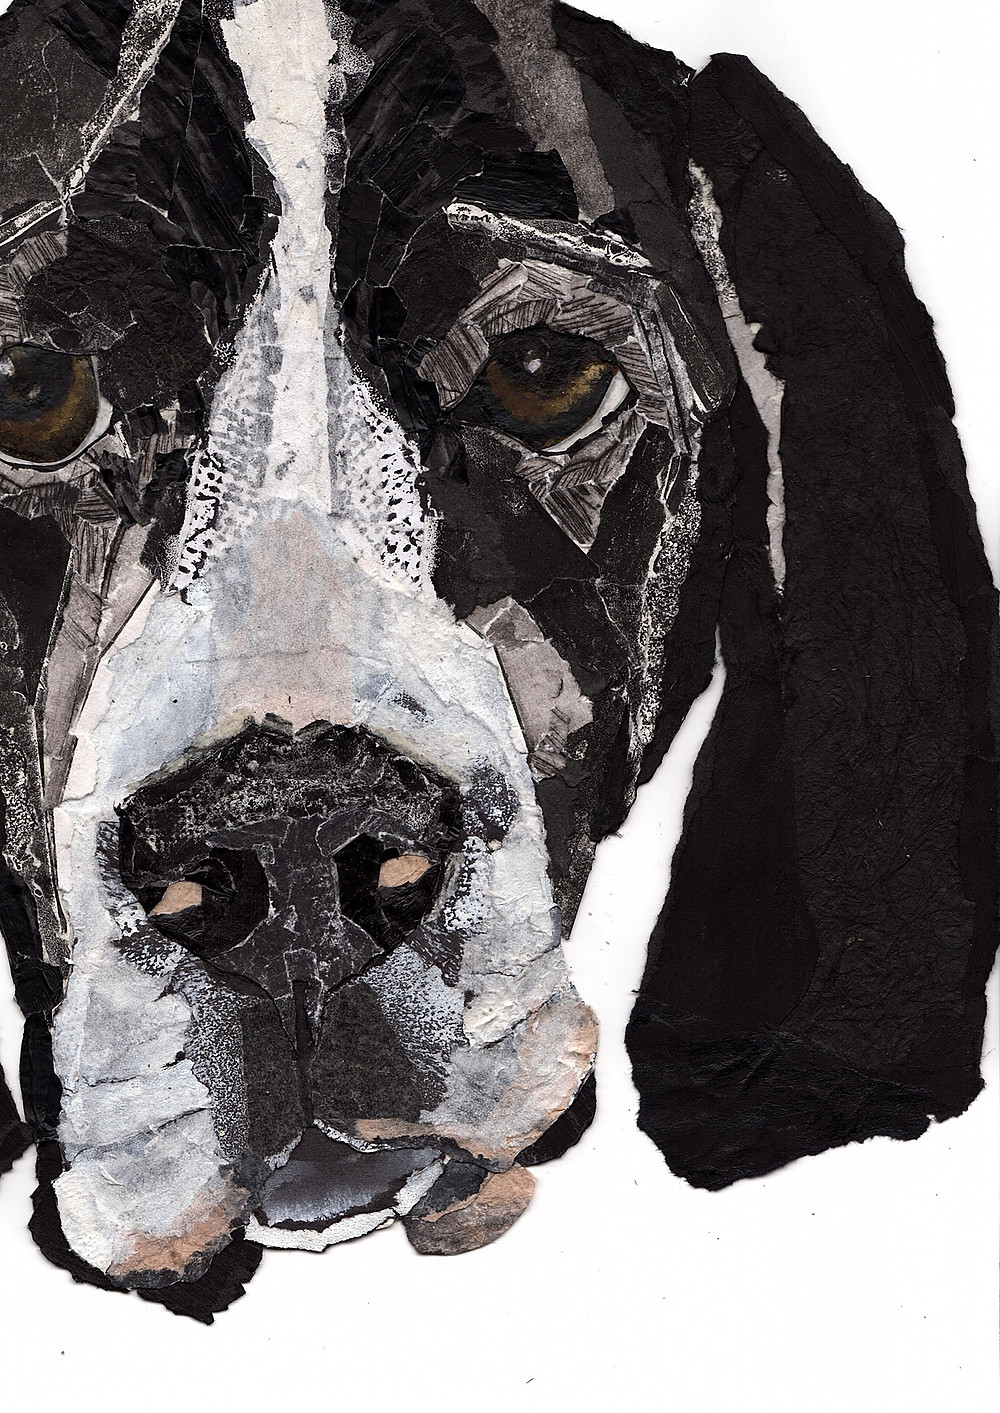 Ness Robinson, Artists in Somerset, Somerset art, Pet portraits in Somerset, Somerset makers, Somerset cool, Somerset blog, Somerset bloggers, Best blog about Somerset, With Bear Hands